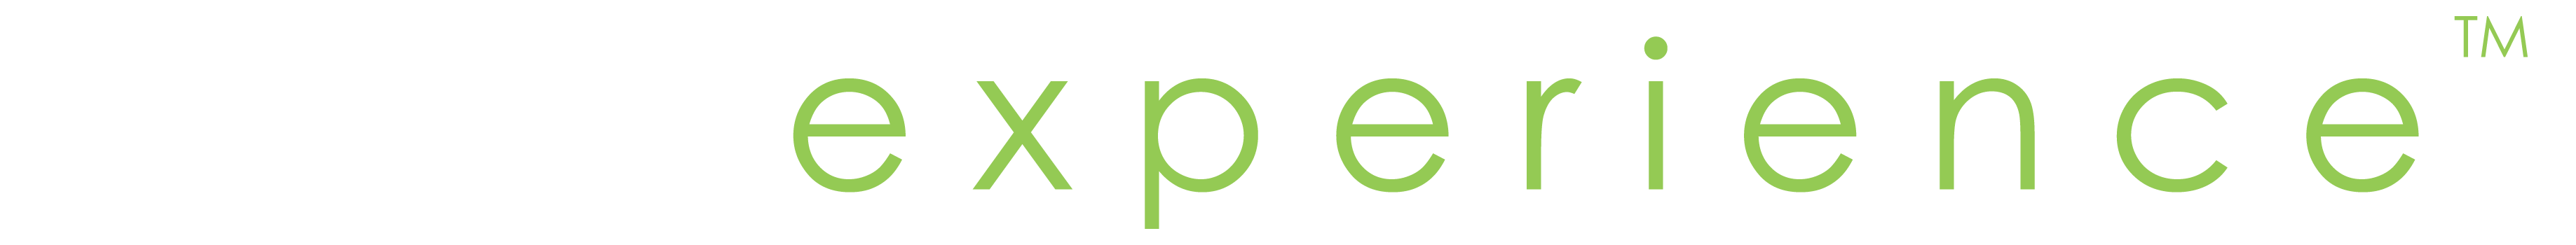 Care Experience logo_white (Mar 24 16) (002).png